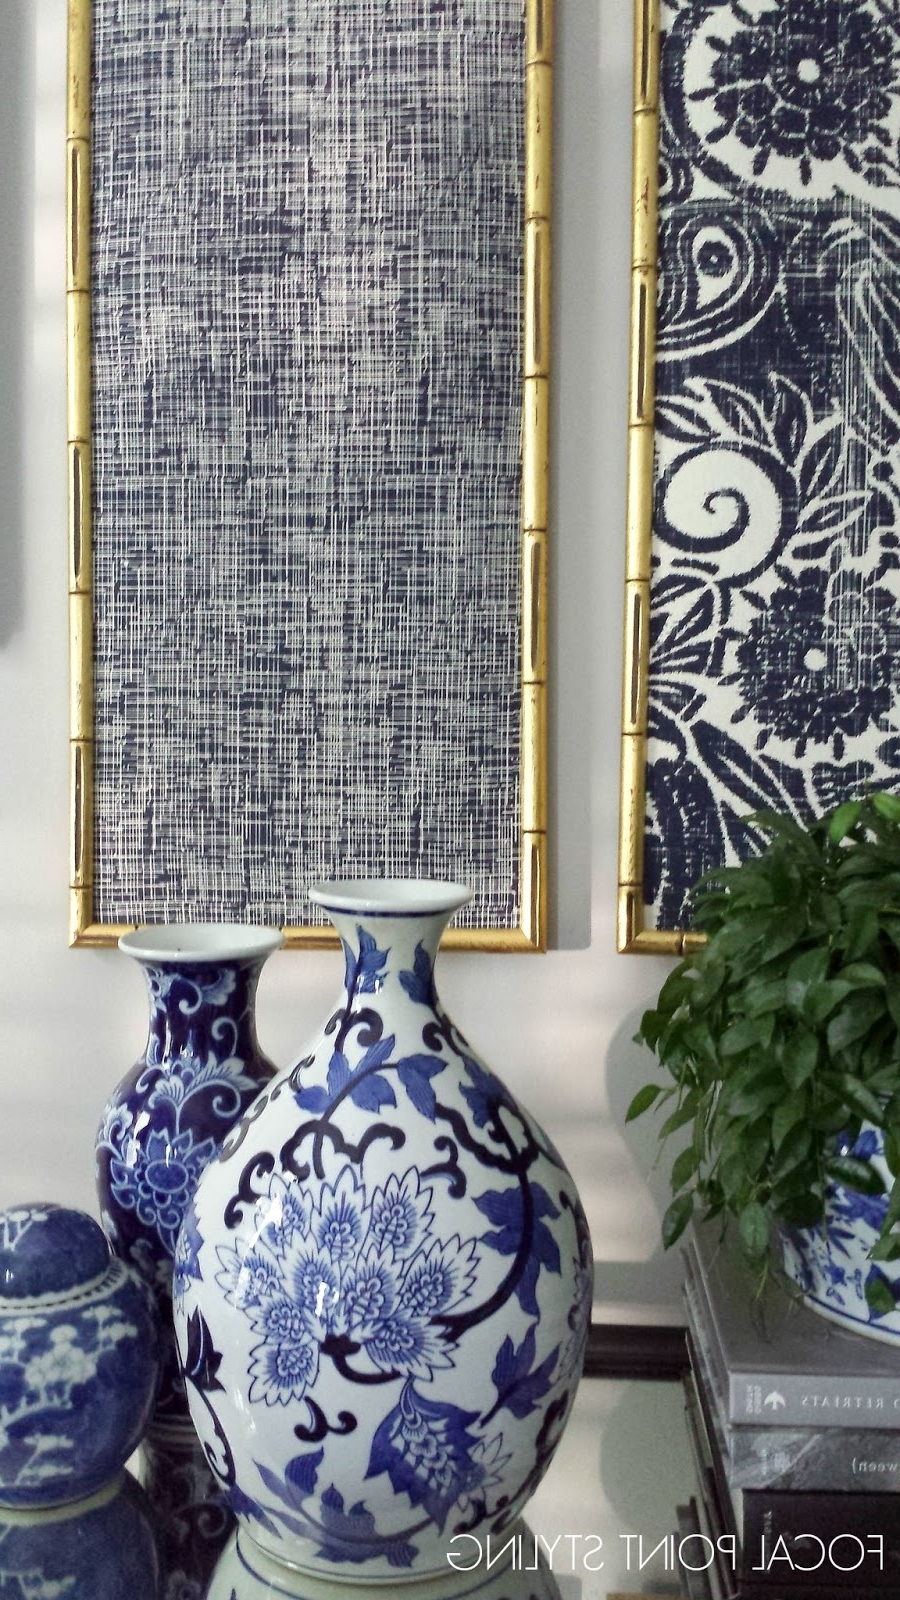 2018 Focal Point Styling: Diy Indigo Wall Art With Framed Fabric Regarding High End Fabric Wall Art (View 1 of 15)